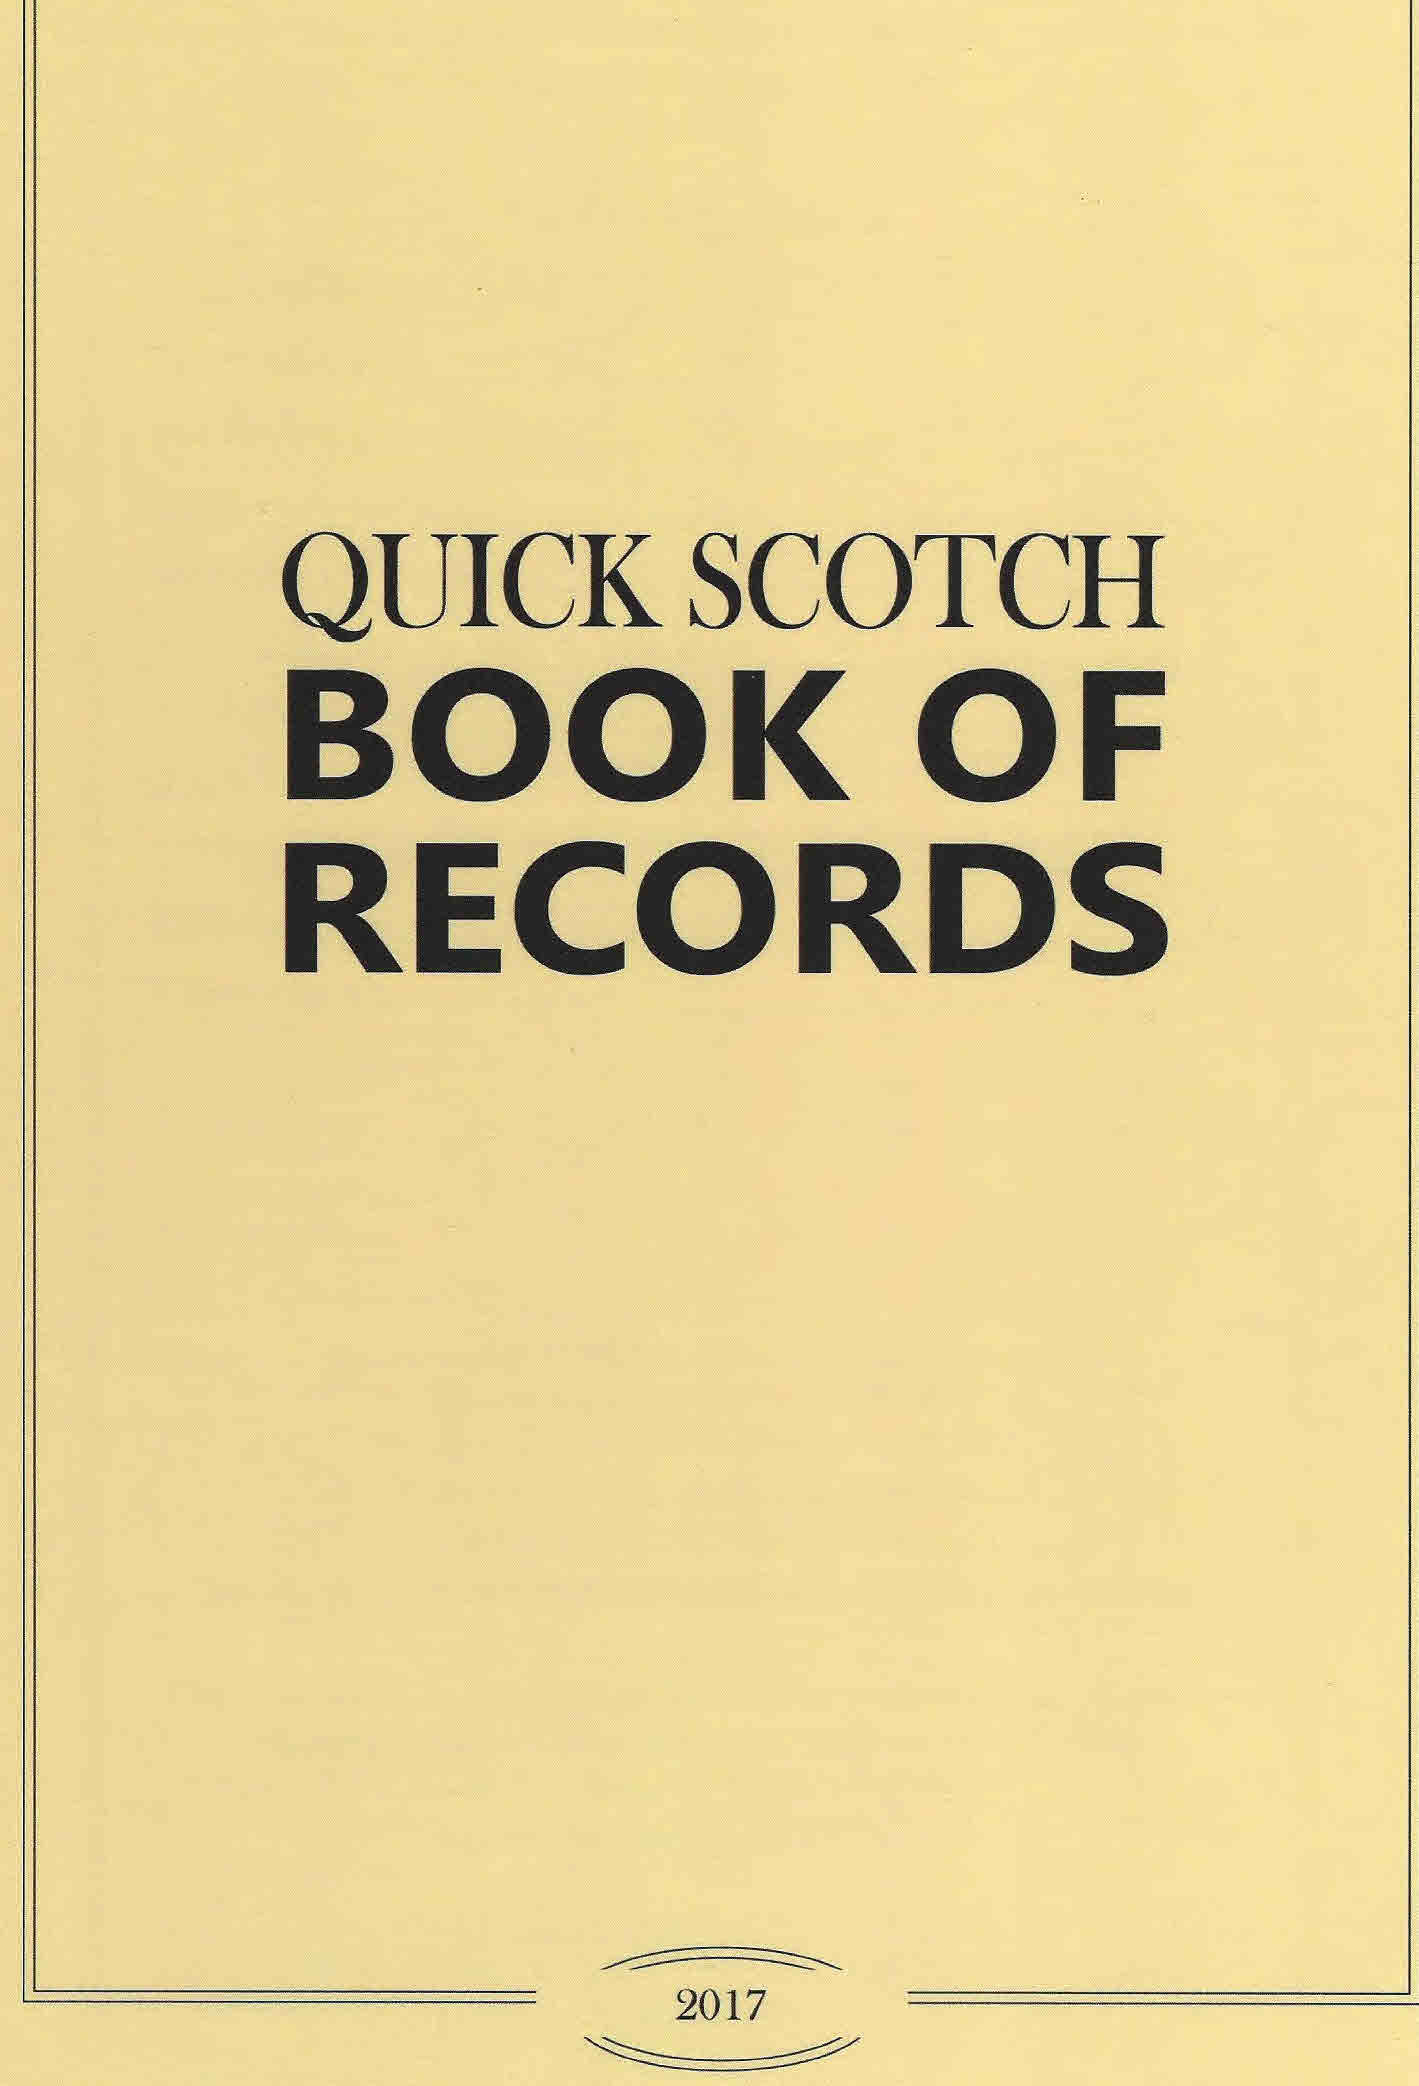 Quick Scotch - Book of Records